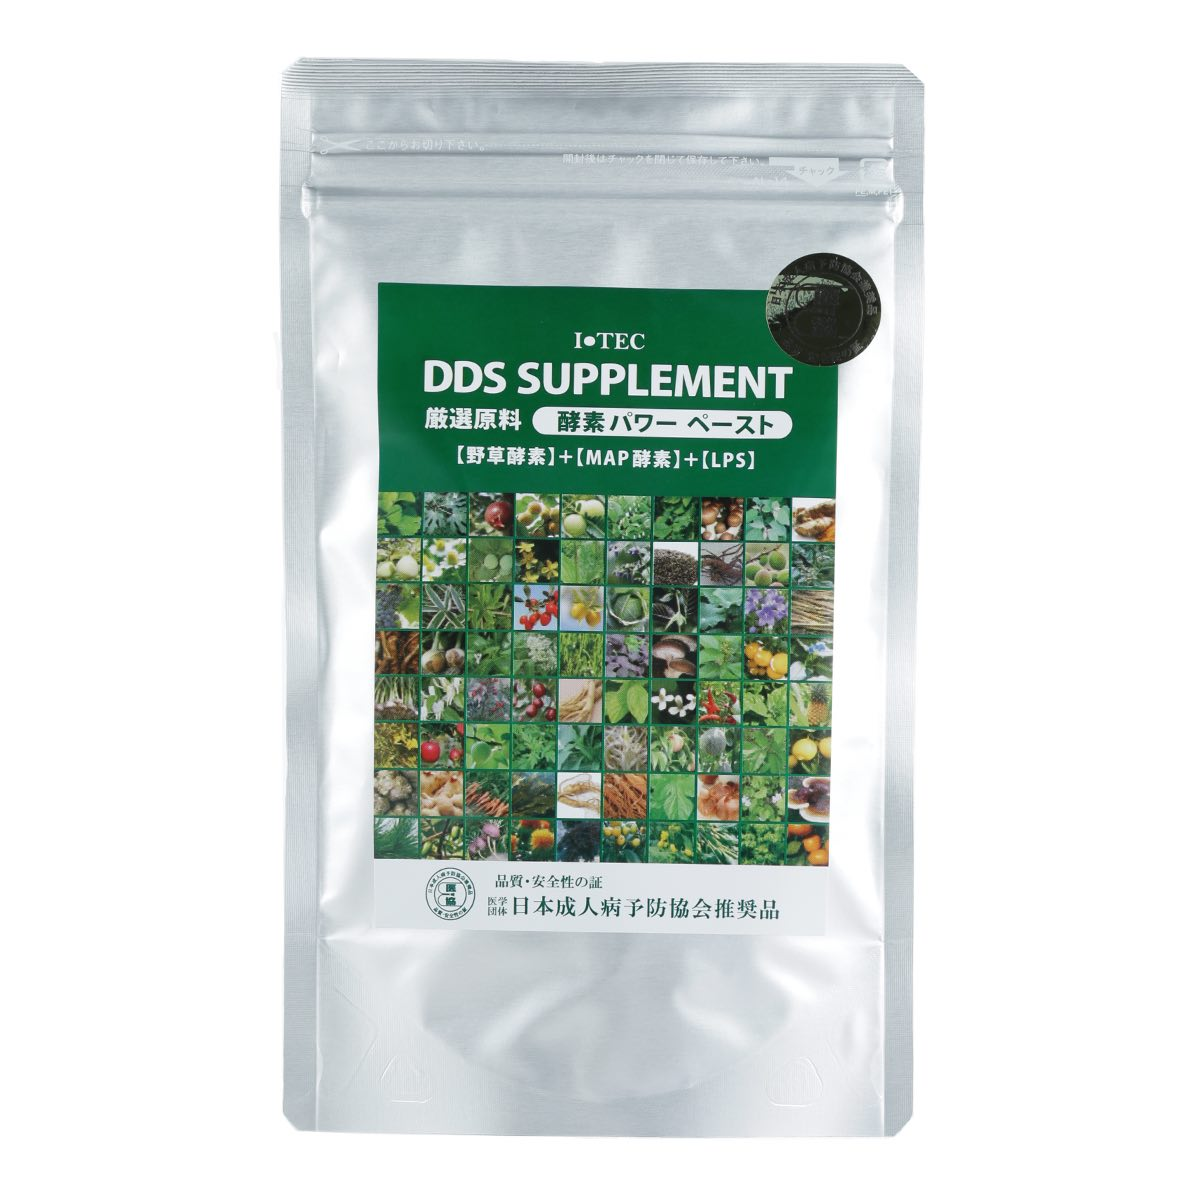 DDS SUPPLEMENT 酵素パワーペースト